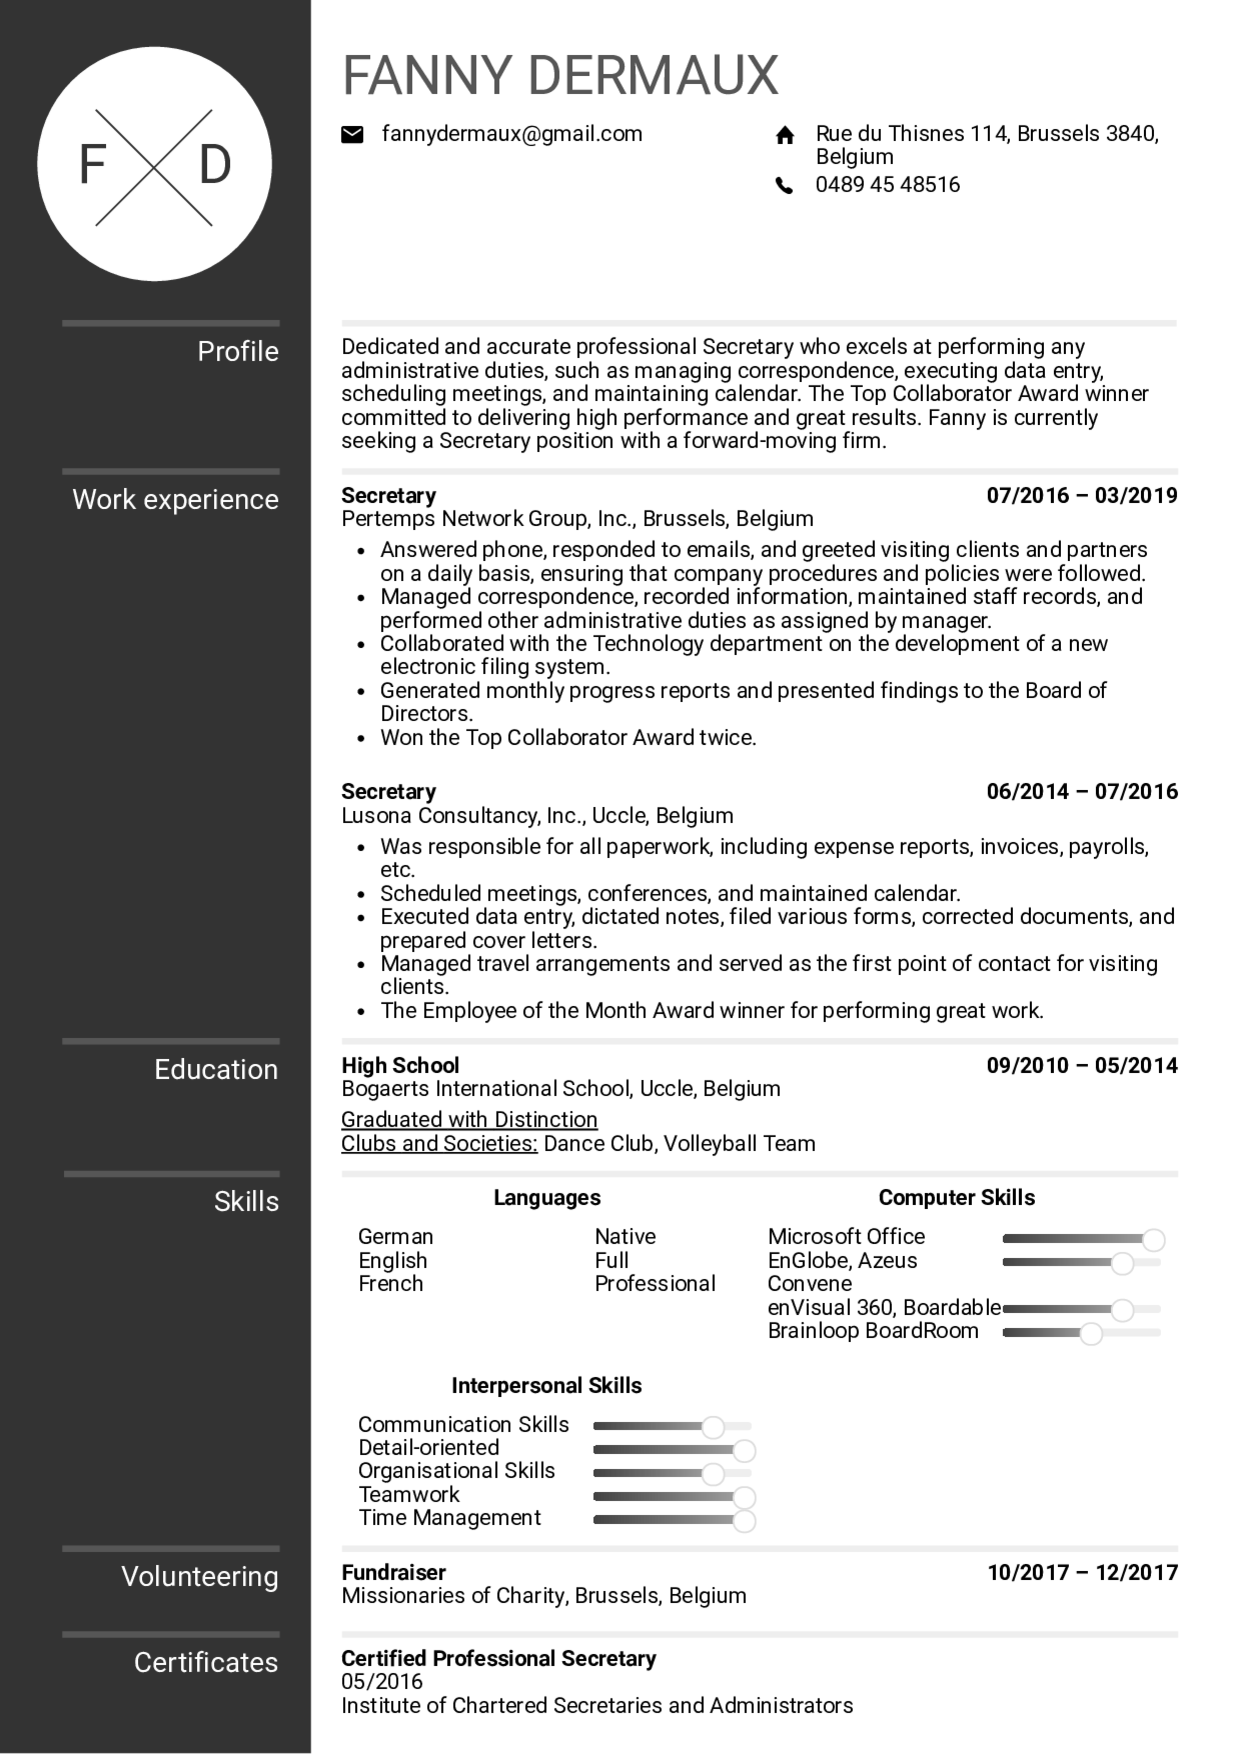 Are You Looking For A Job Do You Need A Professional Cv Cv Packages Starting At Only 5 I W Mechanical Engineer Resume Engineering Resume Resume Examples